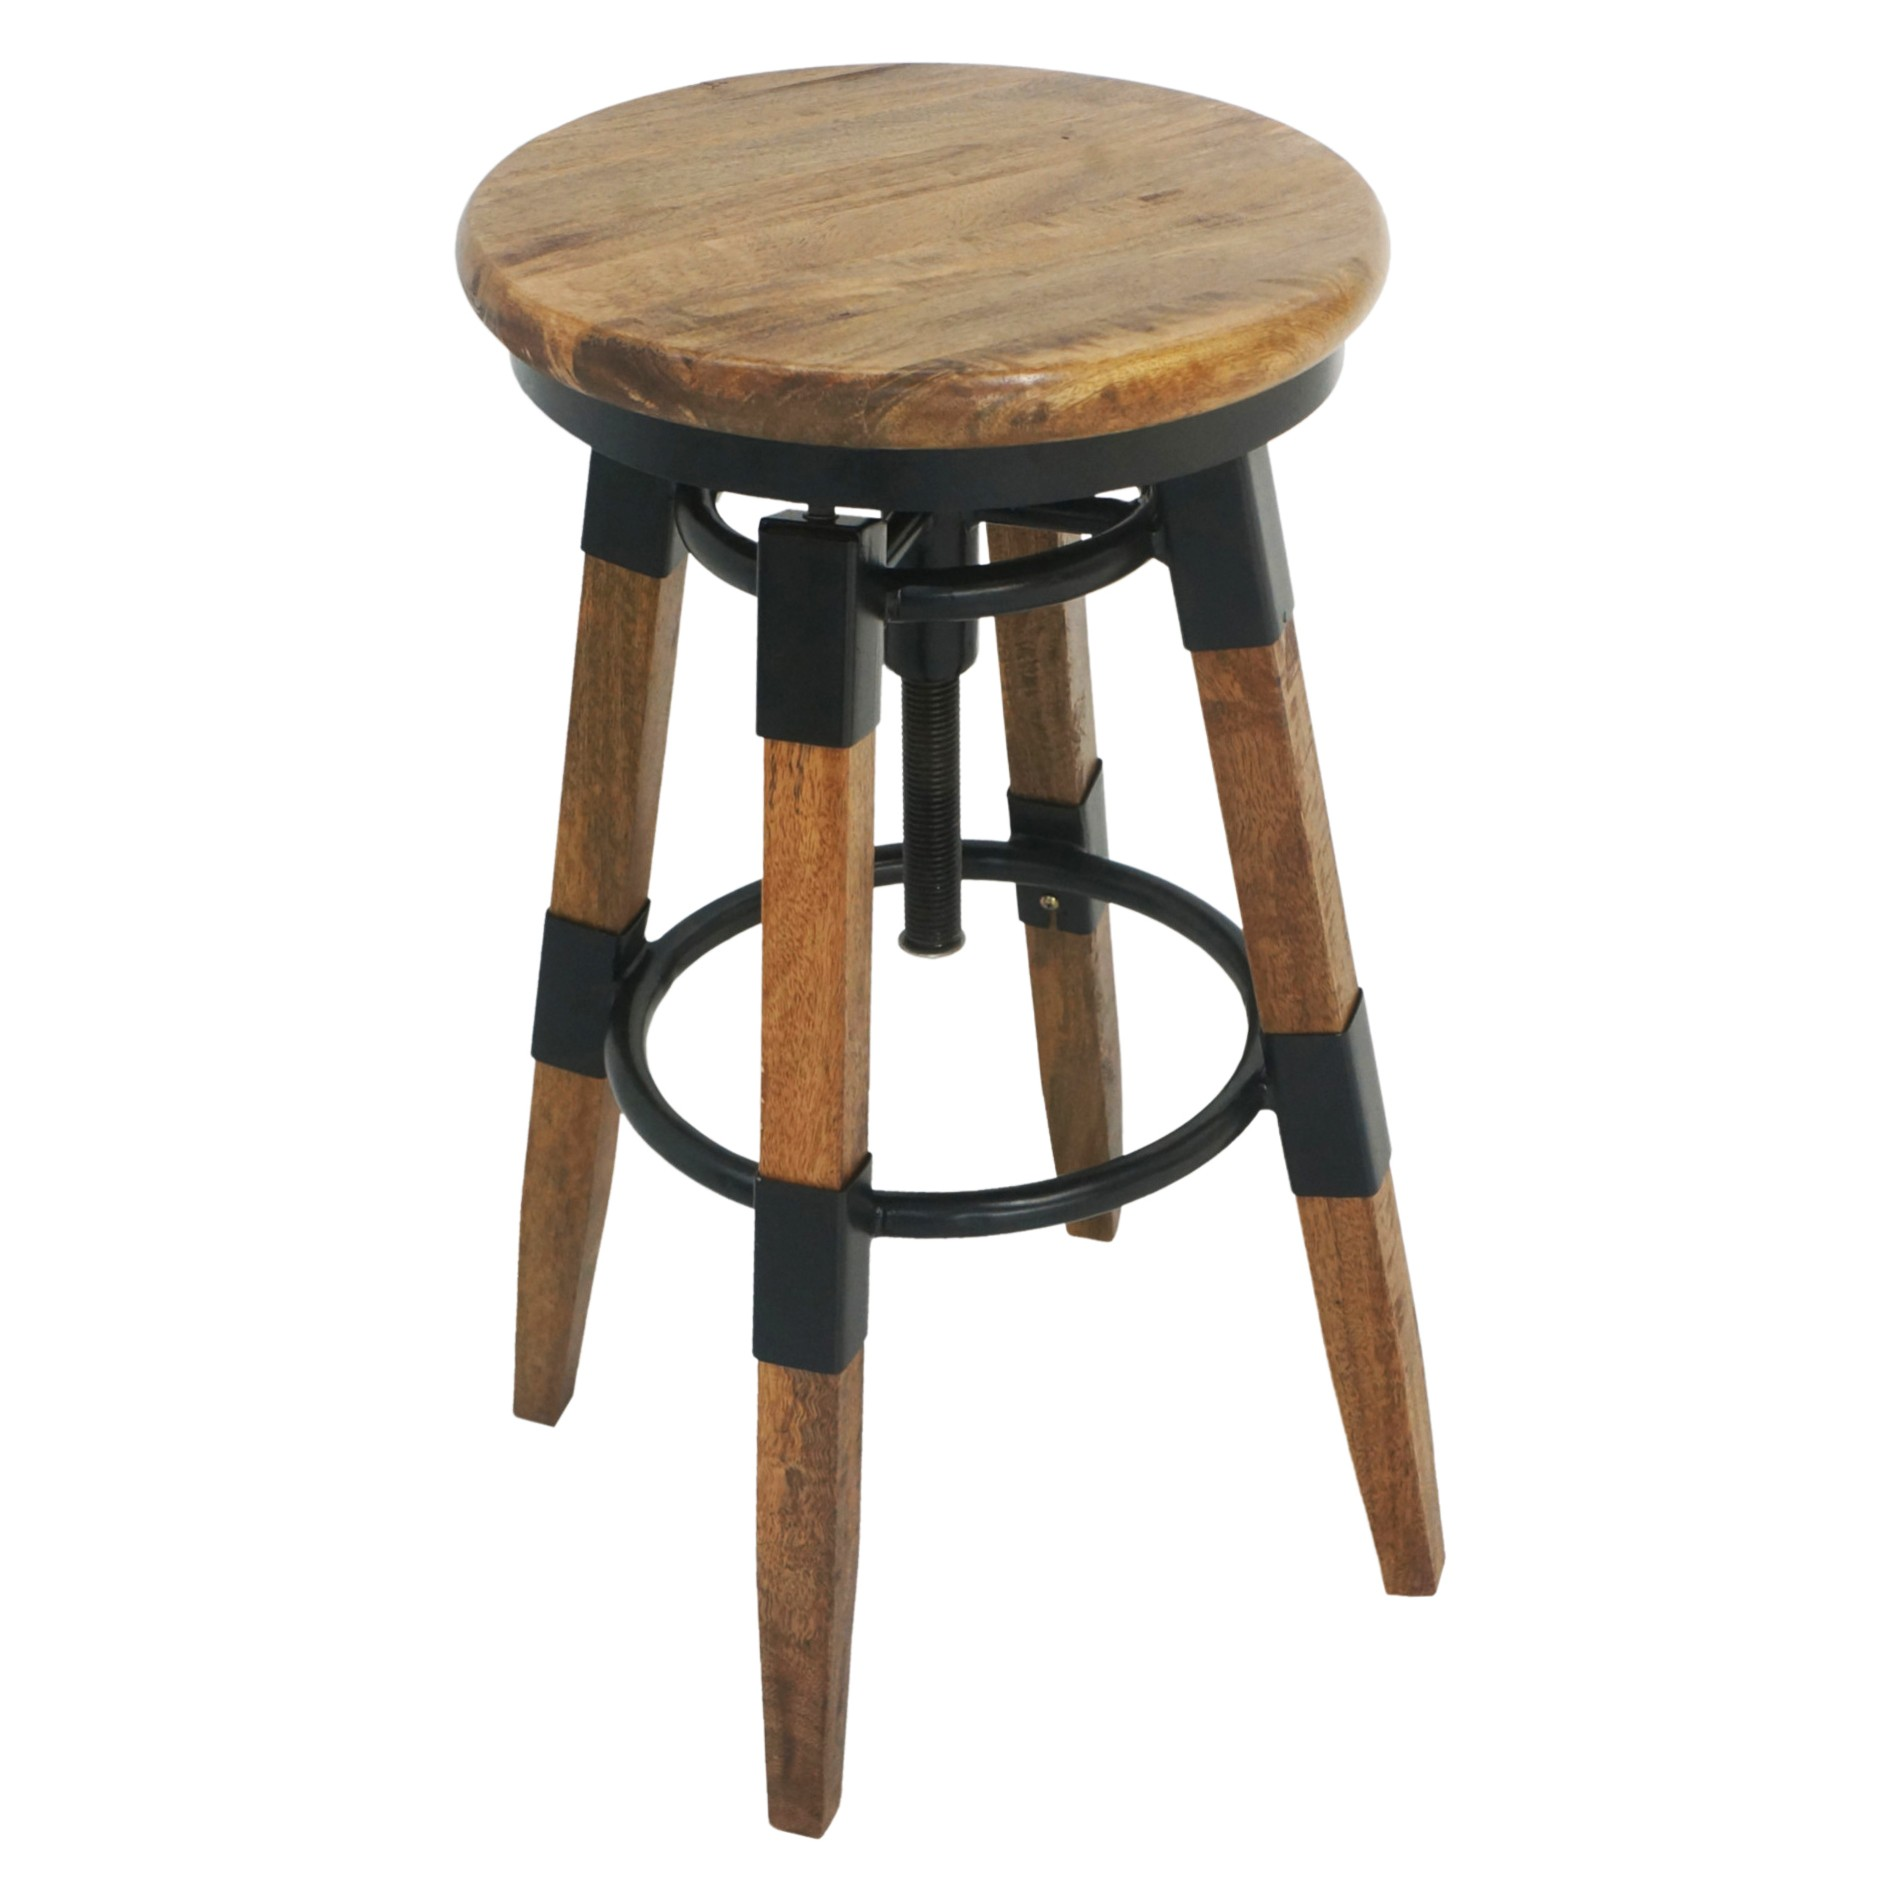 Mayfair Mango Wood Adjustable Industrial Counter / Bar Stool